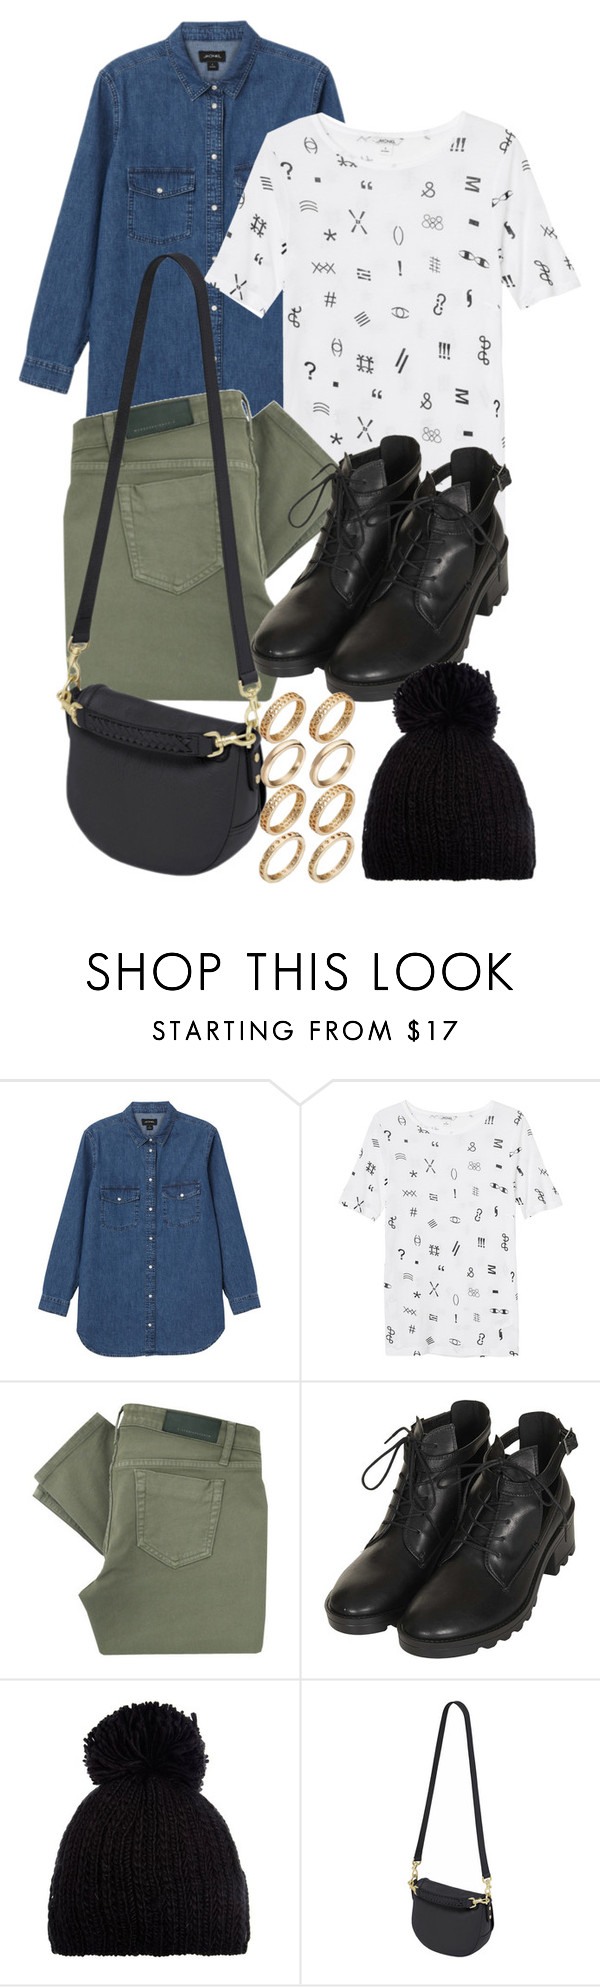 """""""Untitled #928"""" by im-emma ❤ liked on Polyvore featuring Monki, Victoria Beckham, Topshop, Barts, Mulberry and ASOS"""